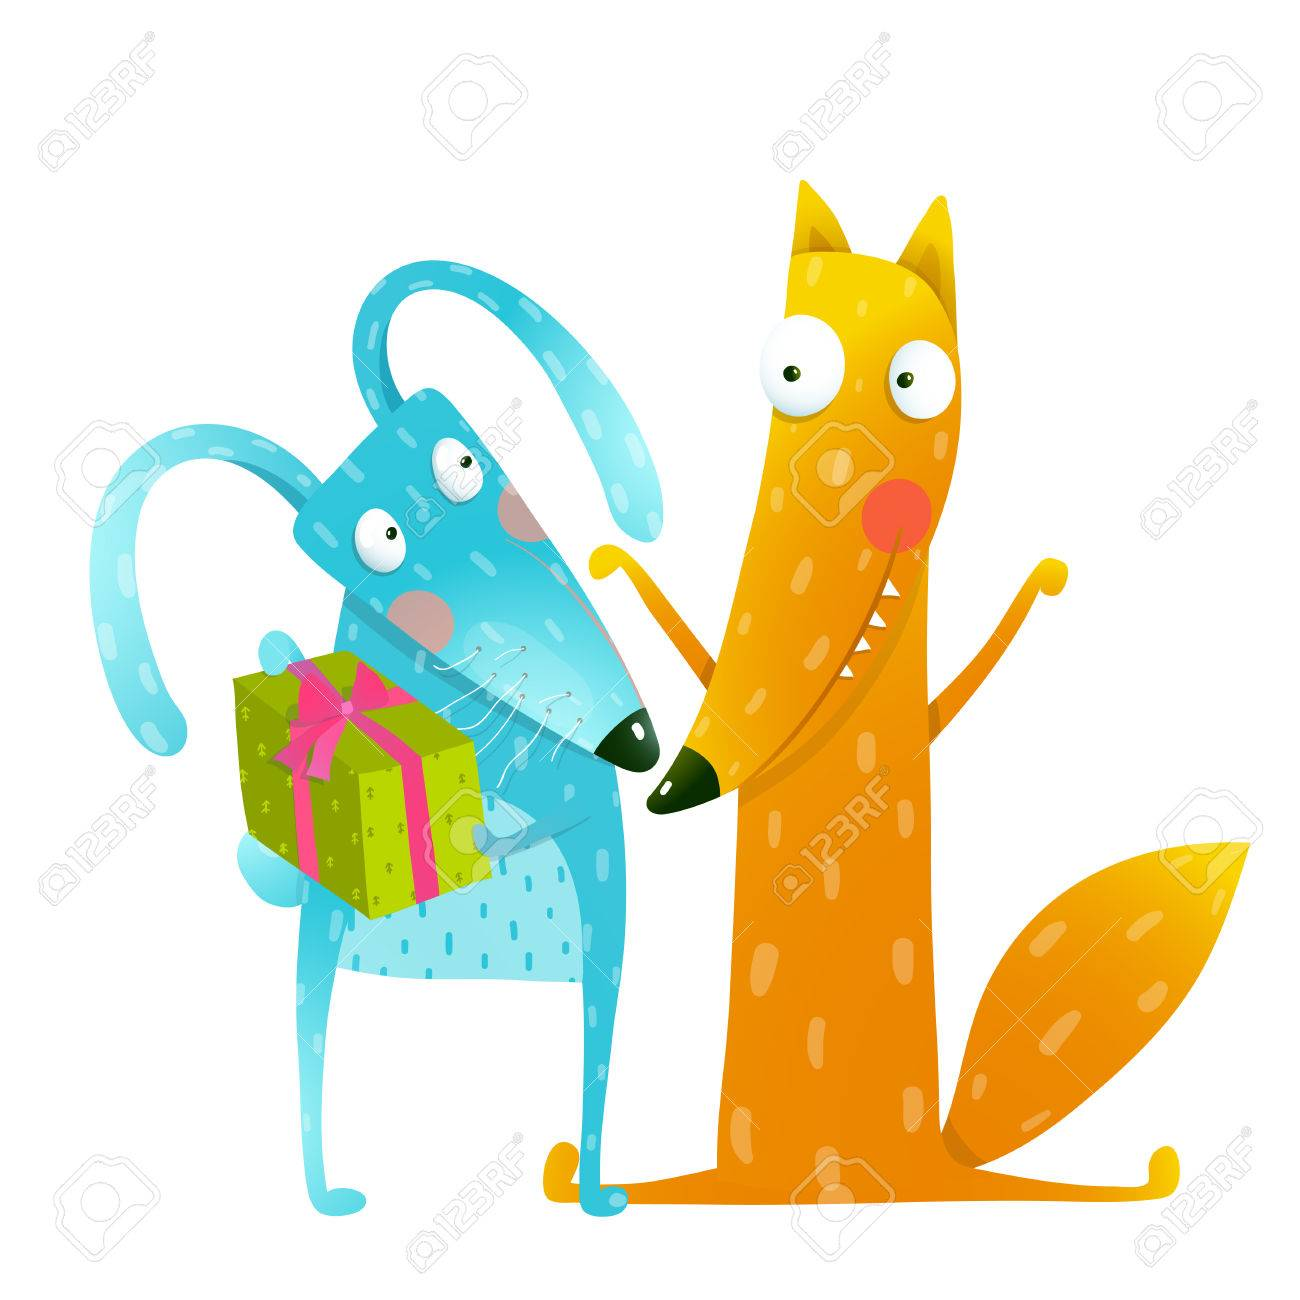 Happy birthday card template with bunny and fox characters cute happy birthday card template with bunny and fox characters cute red fox and blue bunny pronofoot35fo Images